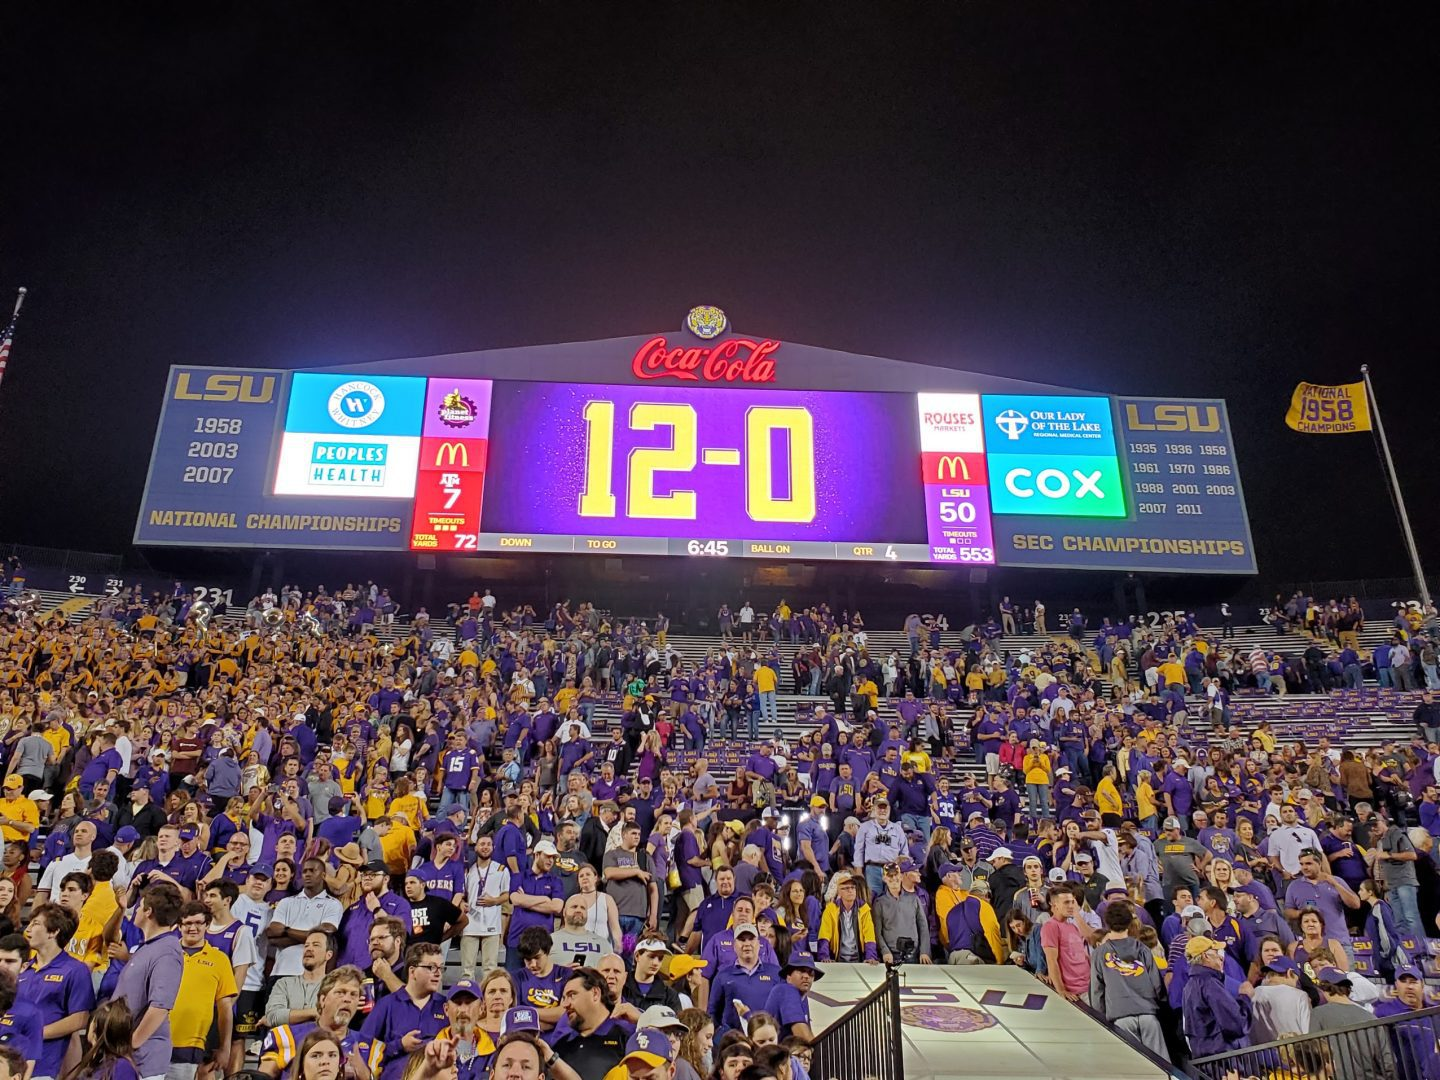 LSU Tigers complete a perfect regular season.